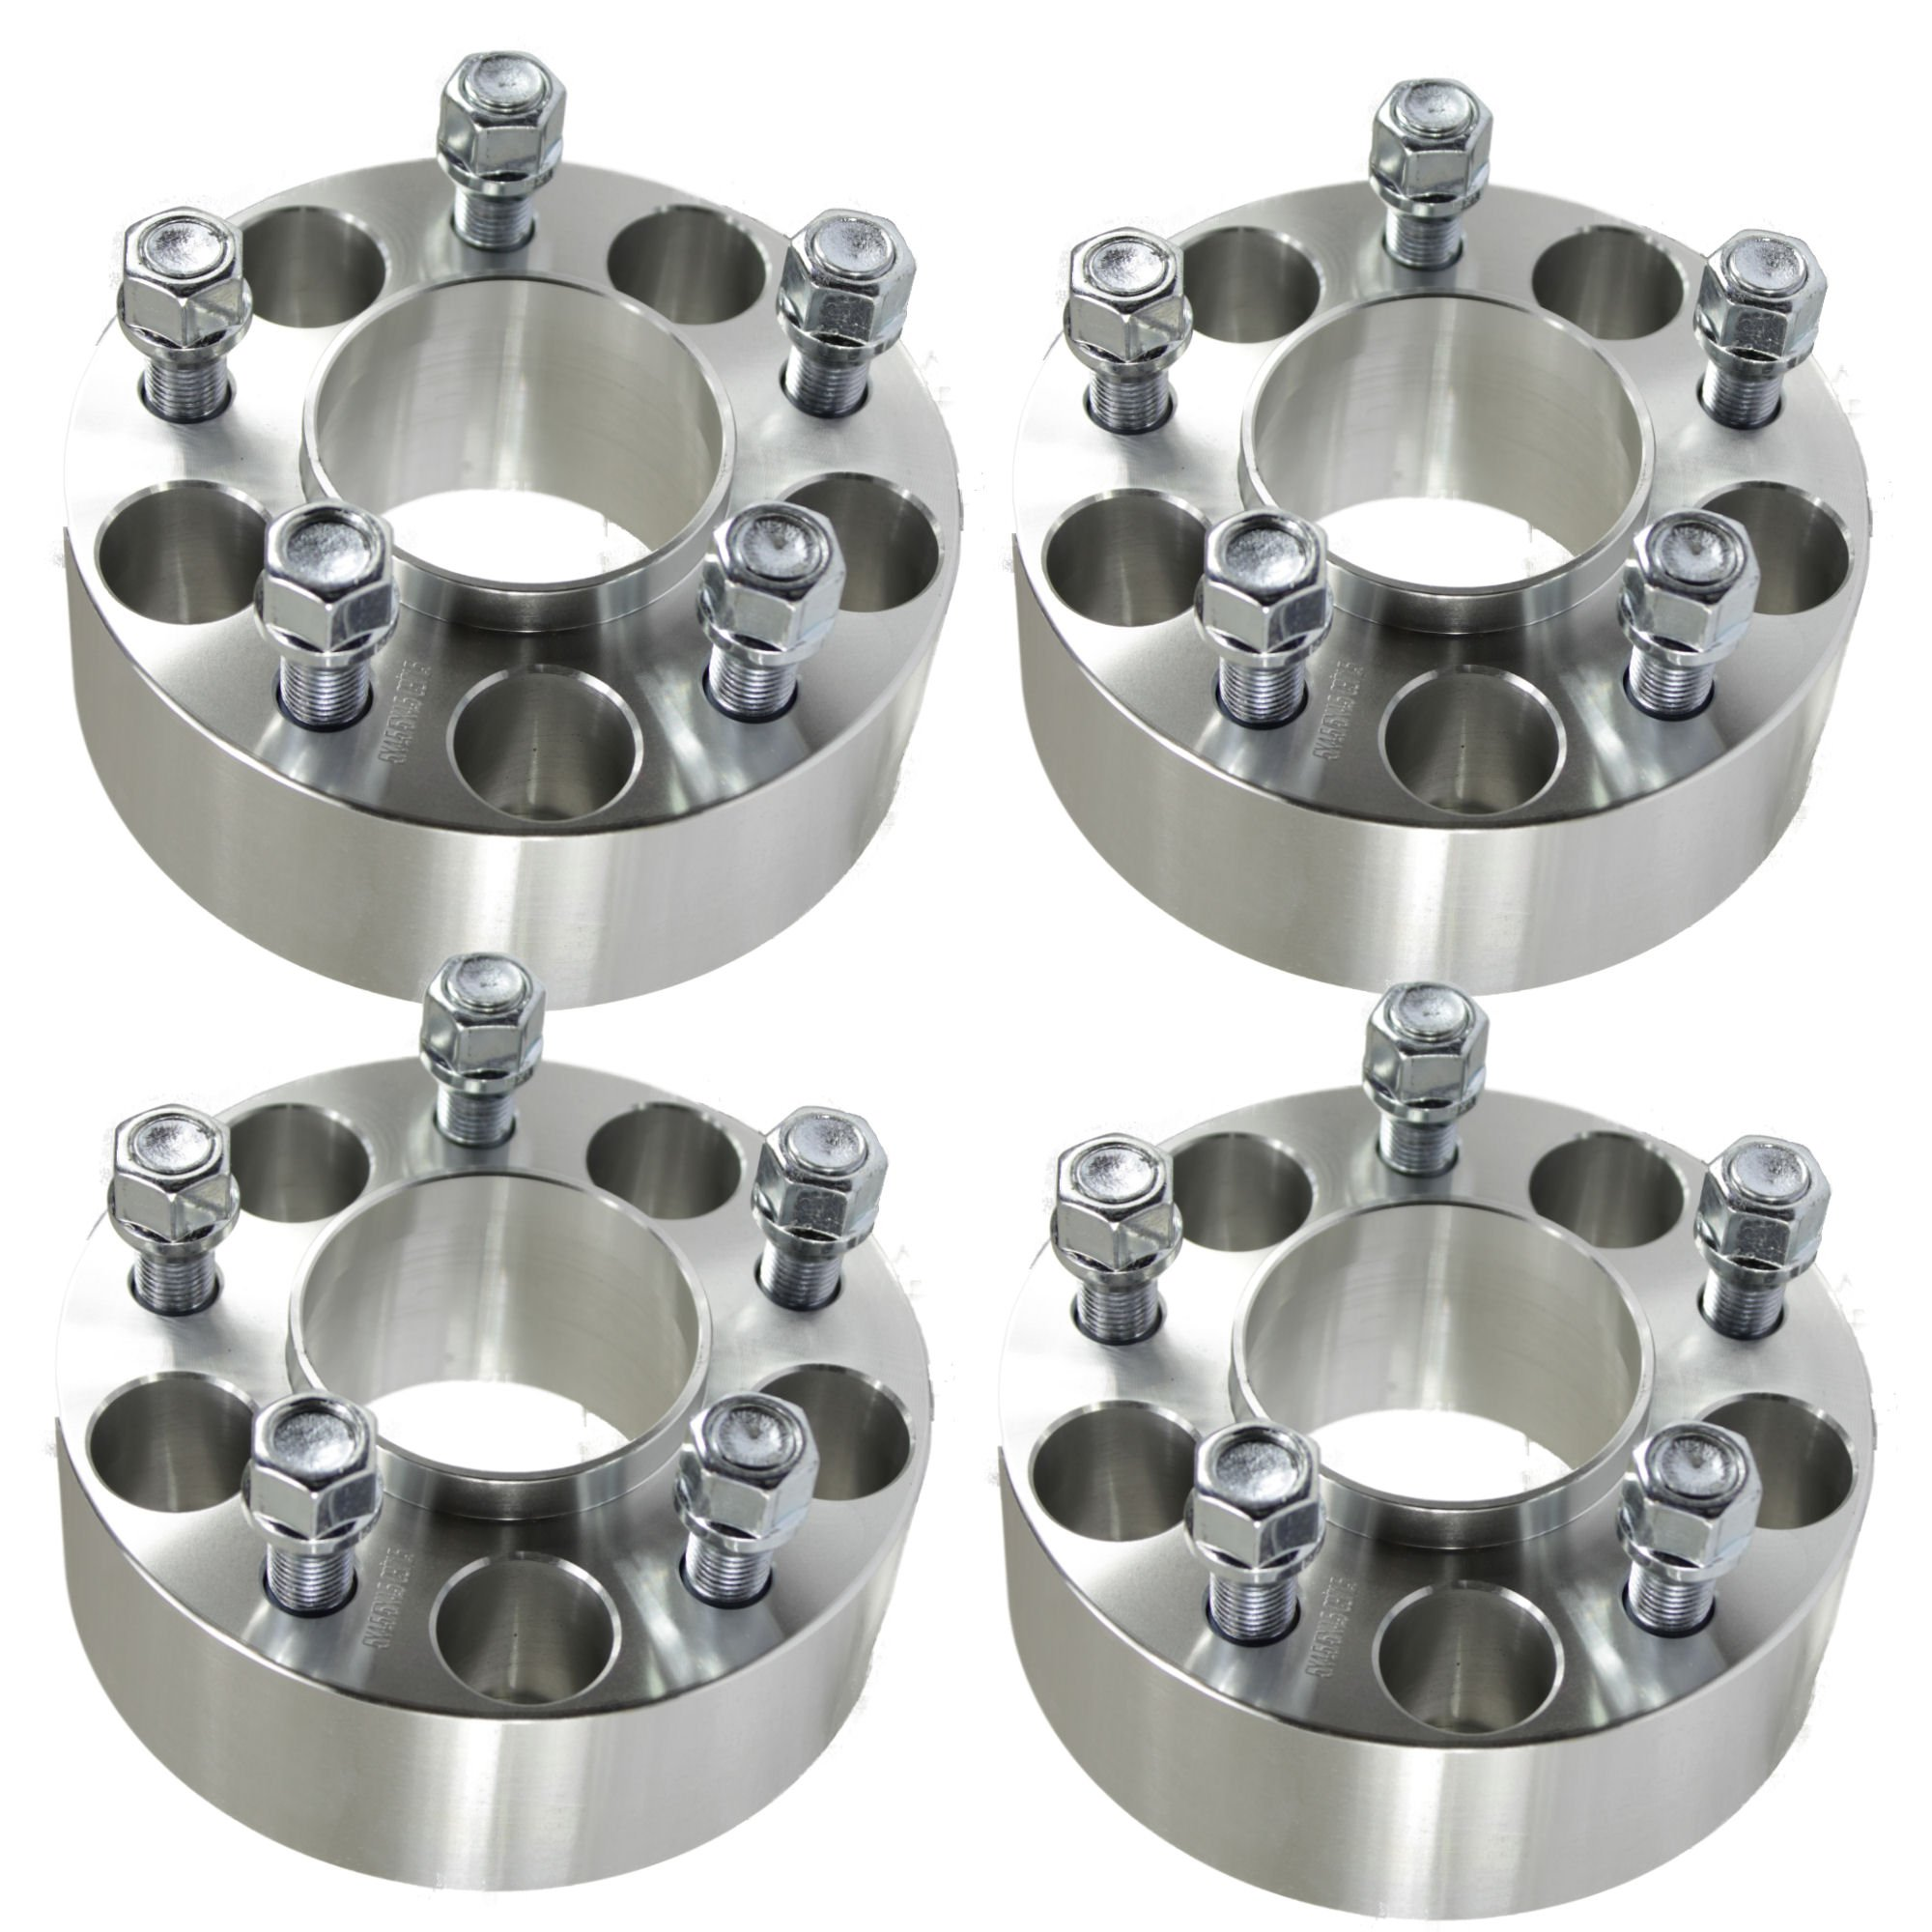 4pc 2.0'' Jeep Hubcentric Wheel Spacers 5x5 for Grand Cherokee Commander Wrangler XK JK WK 5x127